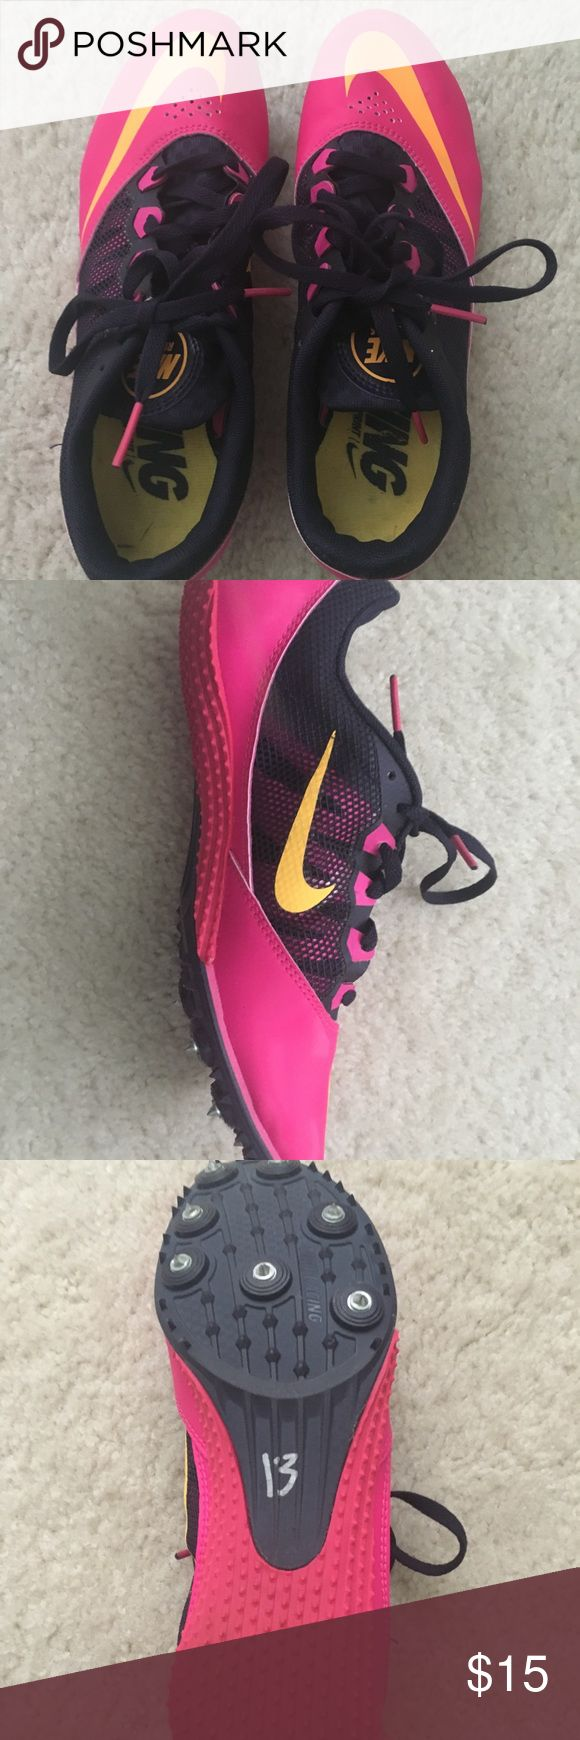 Nike Rival S Racing Spikes These are made for sprinting events in track and field (usually like the 50m/100m/200m). These are in perfect condition and were only used in 2 races. They are very comfortable and are a women's size 7.5. Nike Shoes Athletic Shoes